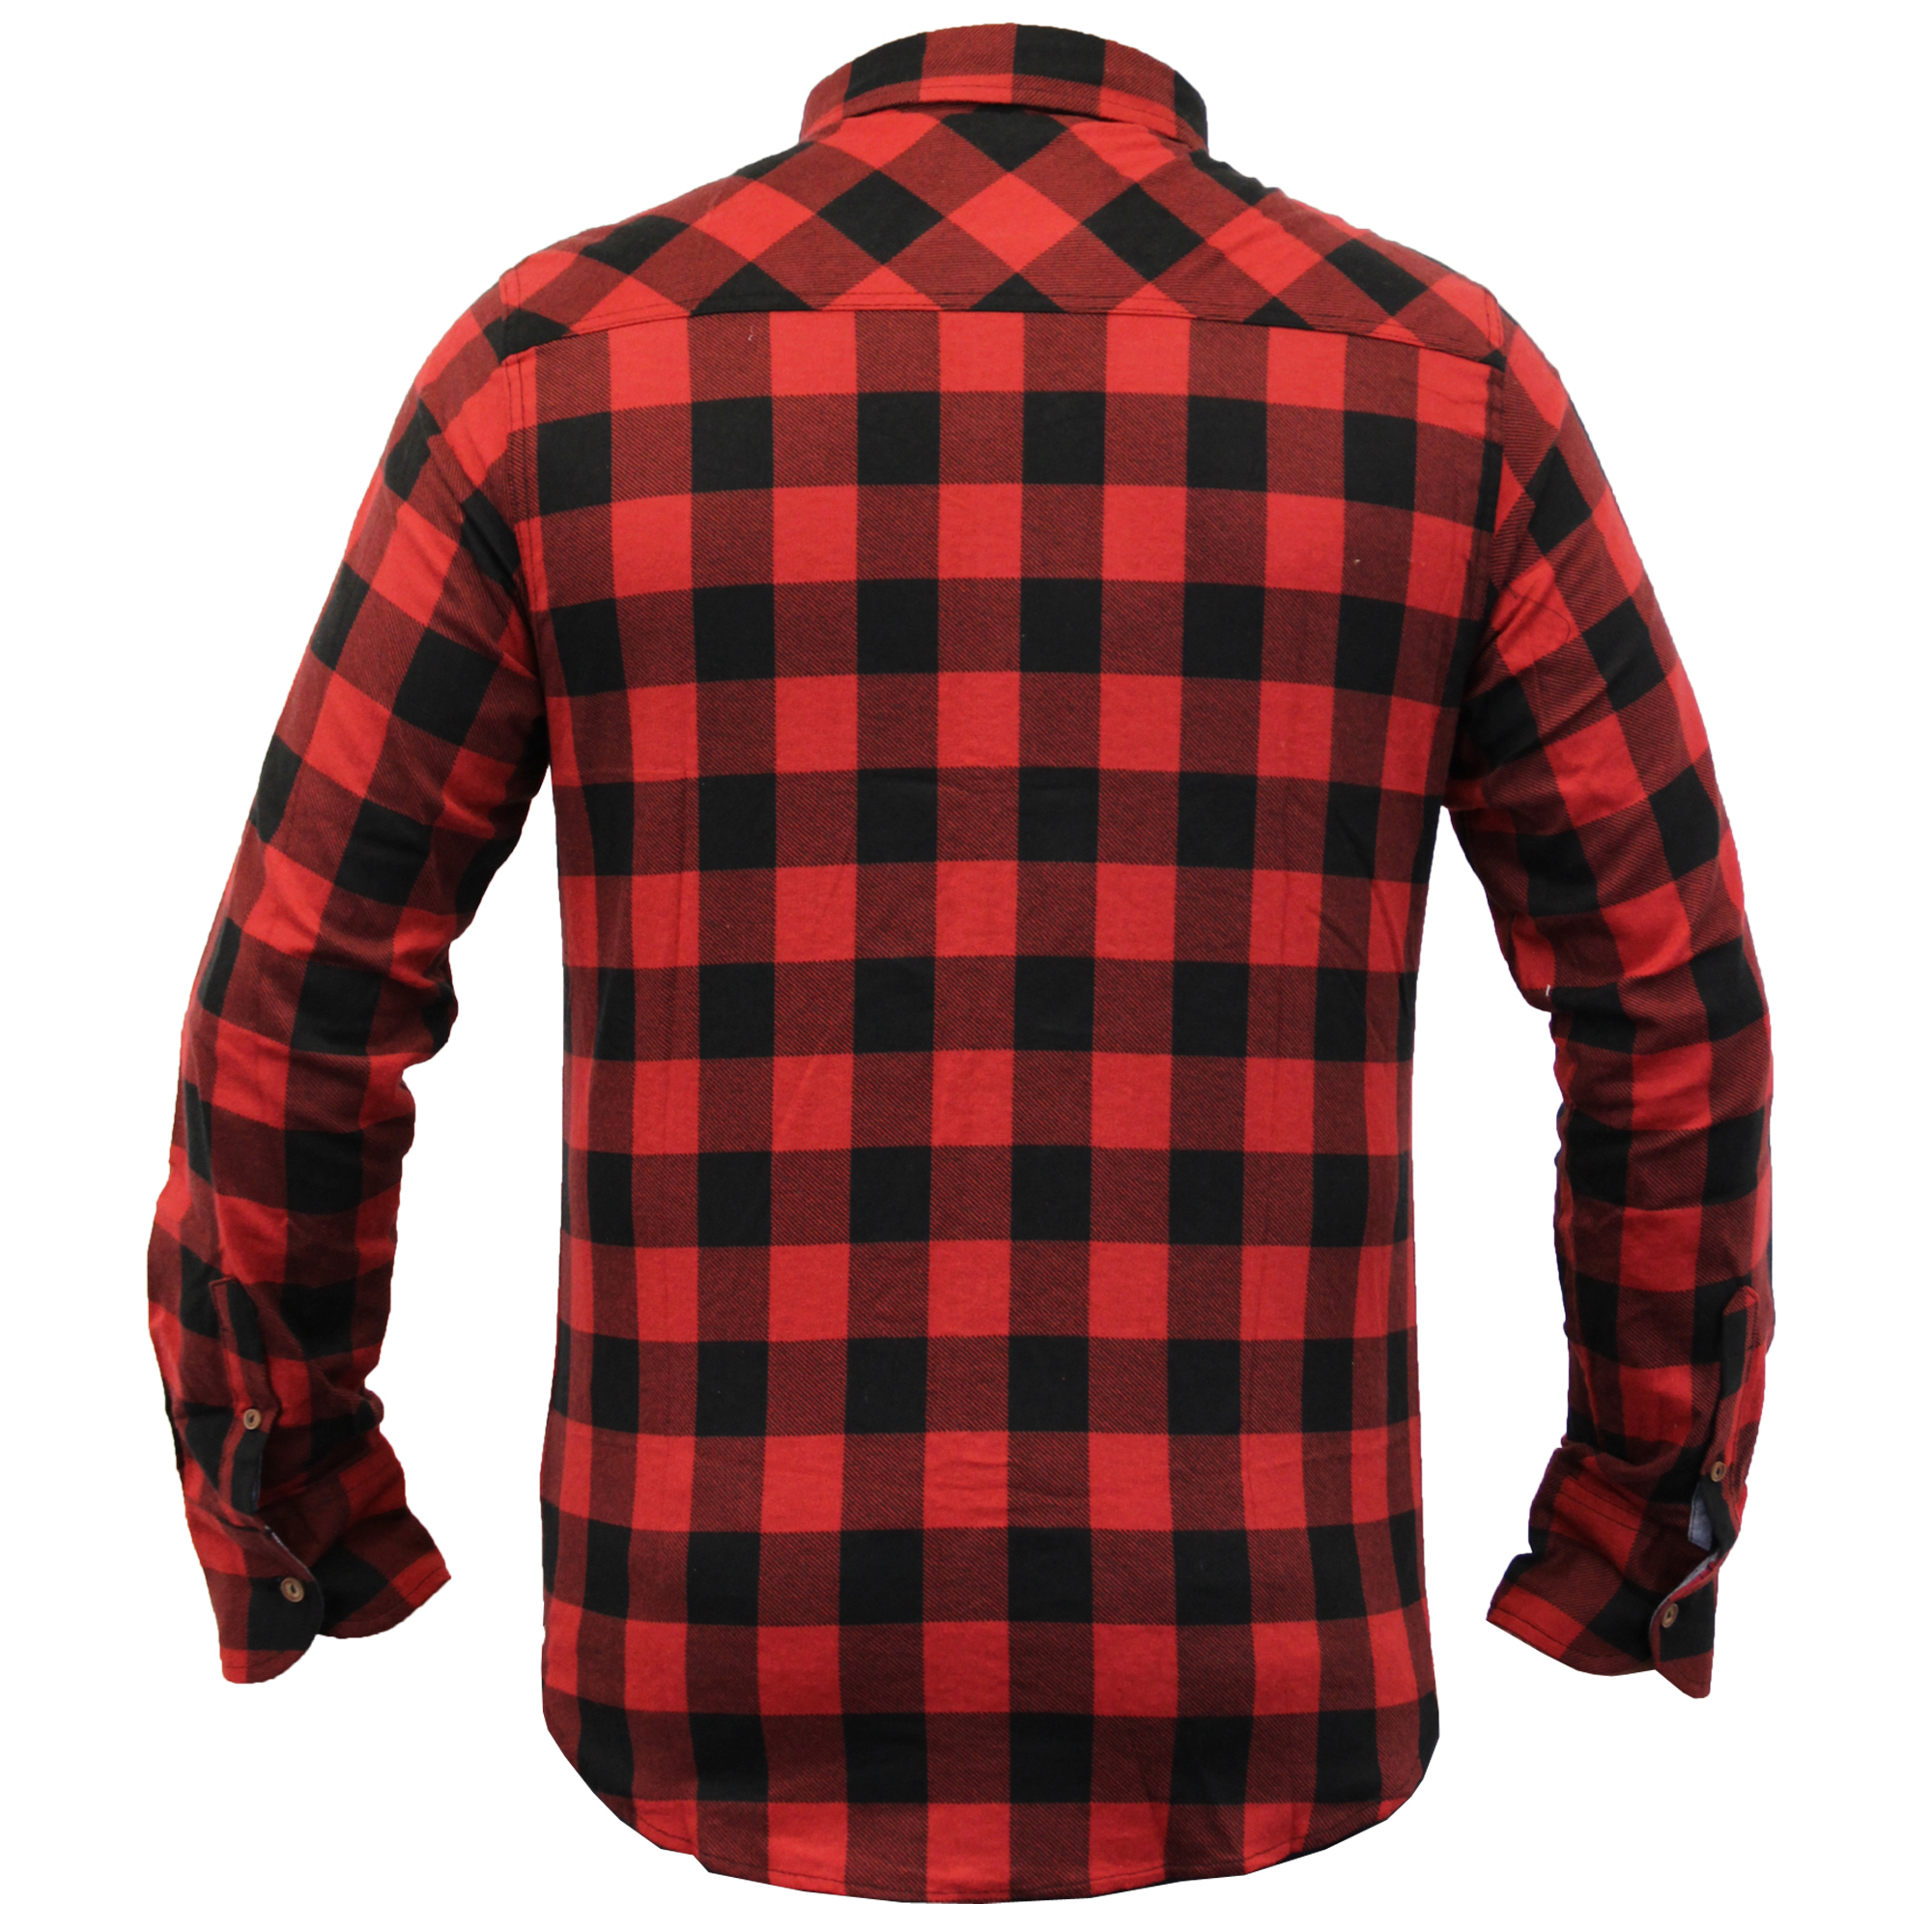 Mens-Checked-Tartan-Long-Sleeved-Collared-Shirt-By-Brave-Soul miniatuur 9